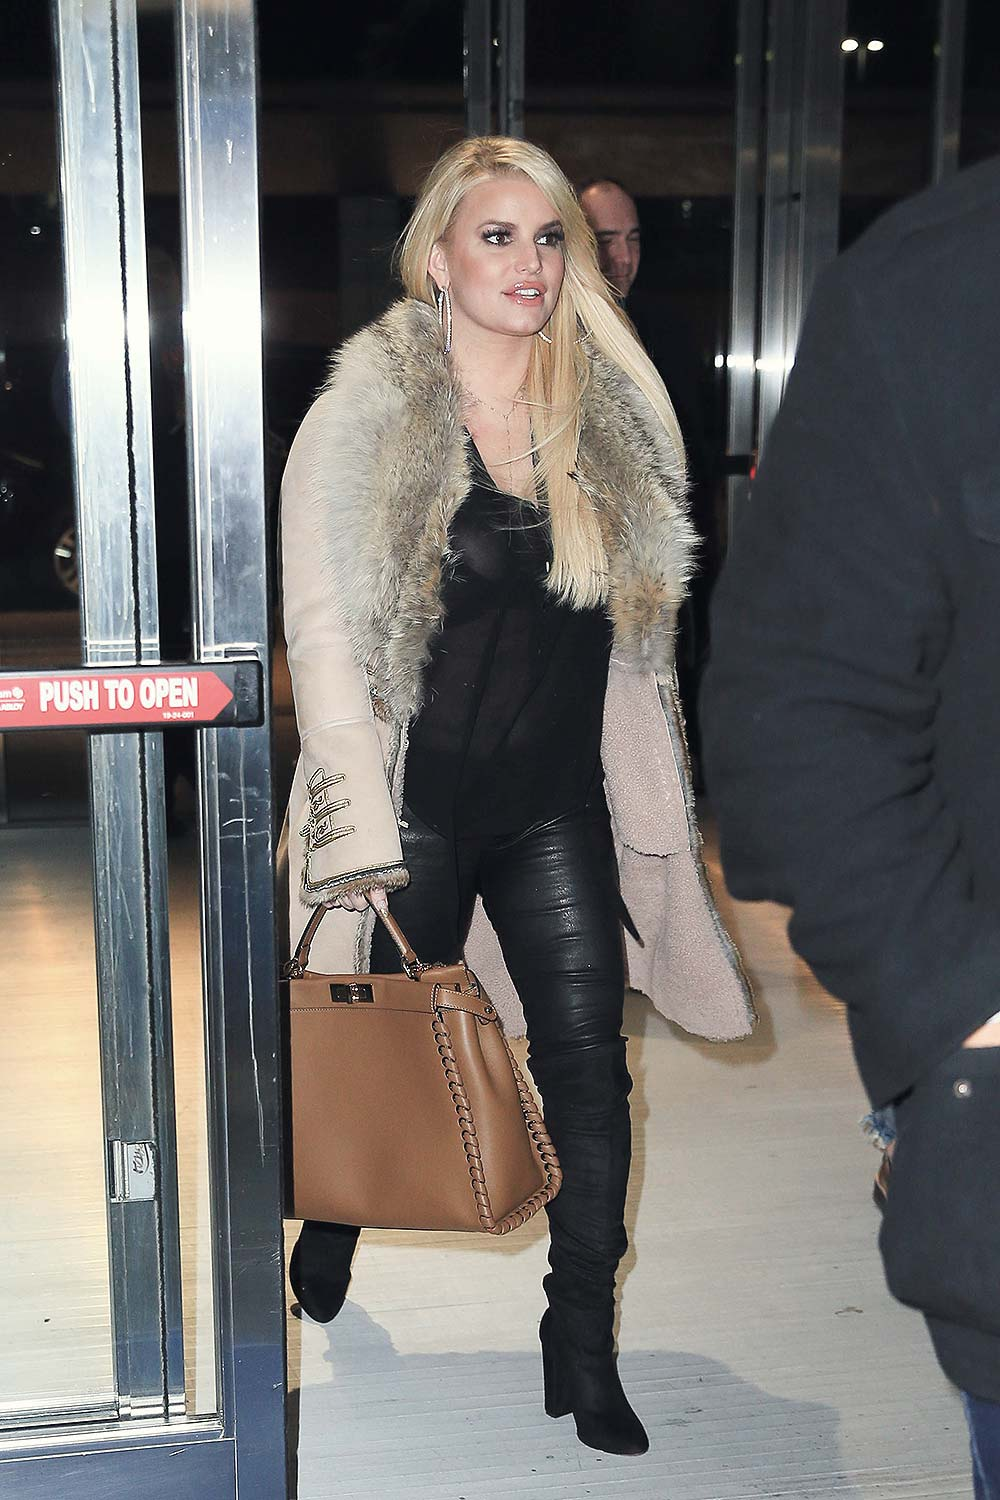 Jessica Simpson Leaving Rosa Mexicano Restaurant Leather